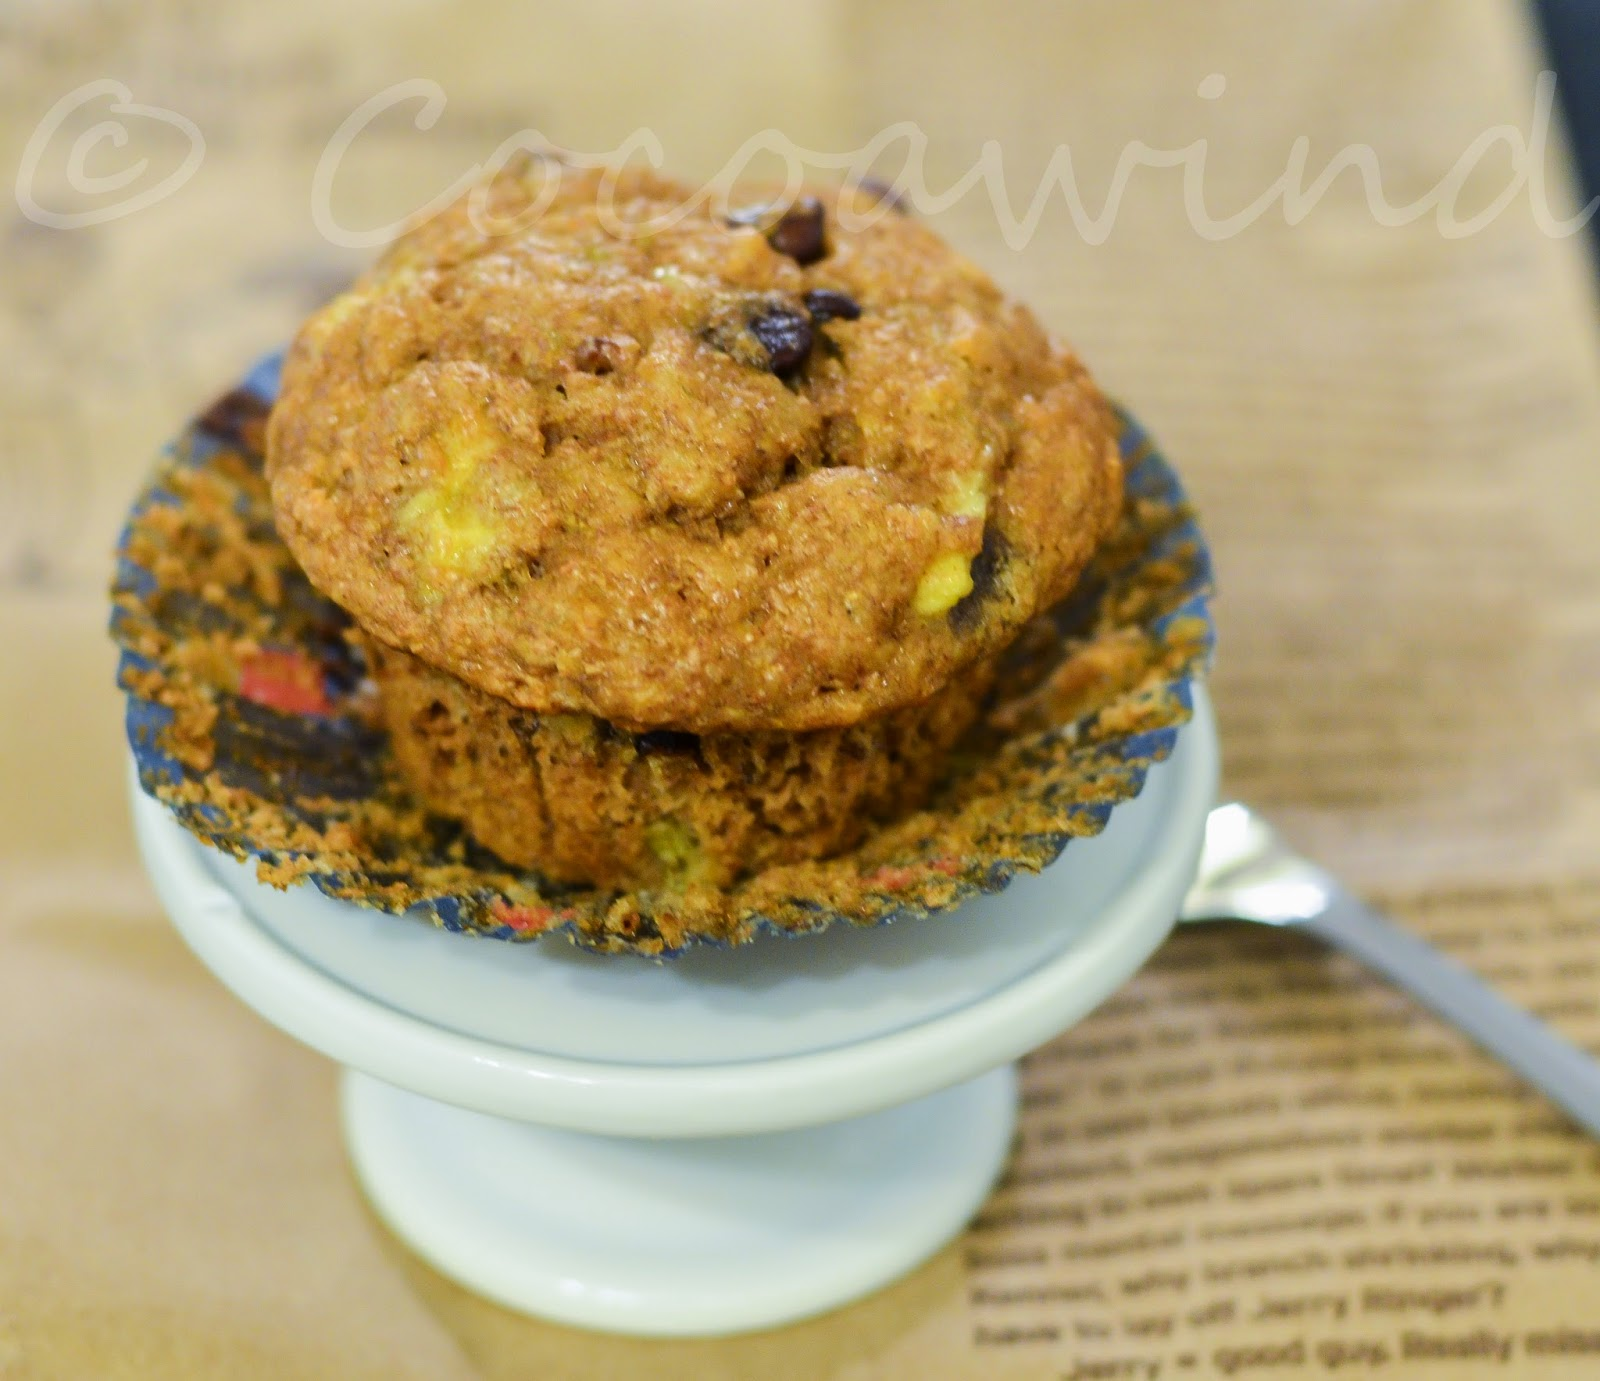 Eggless Whole-wheat Chocolate Chip Banana Muffin